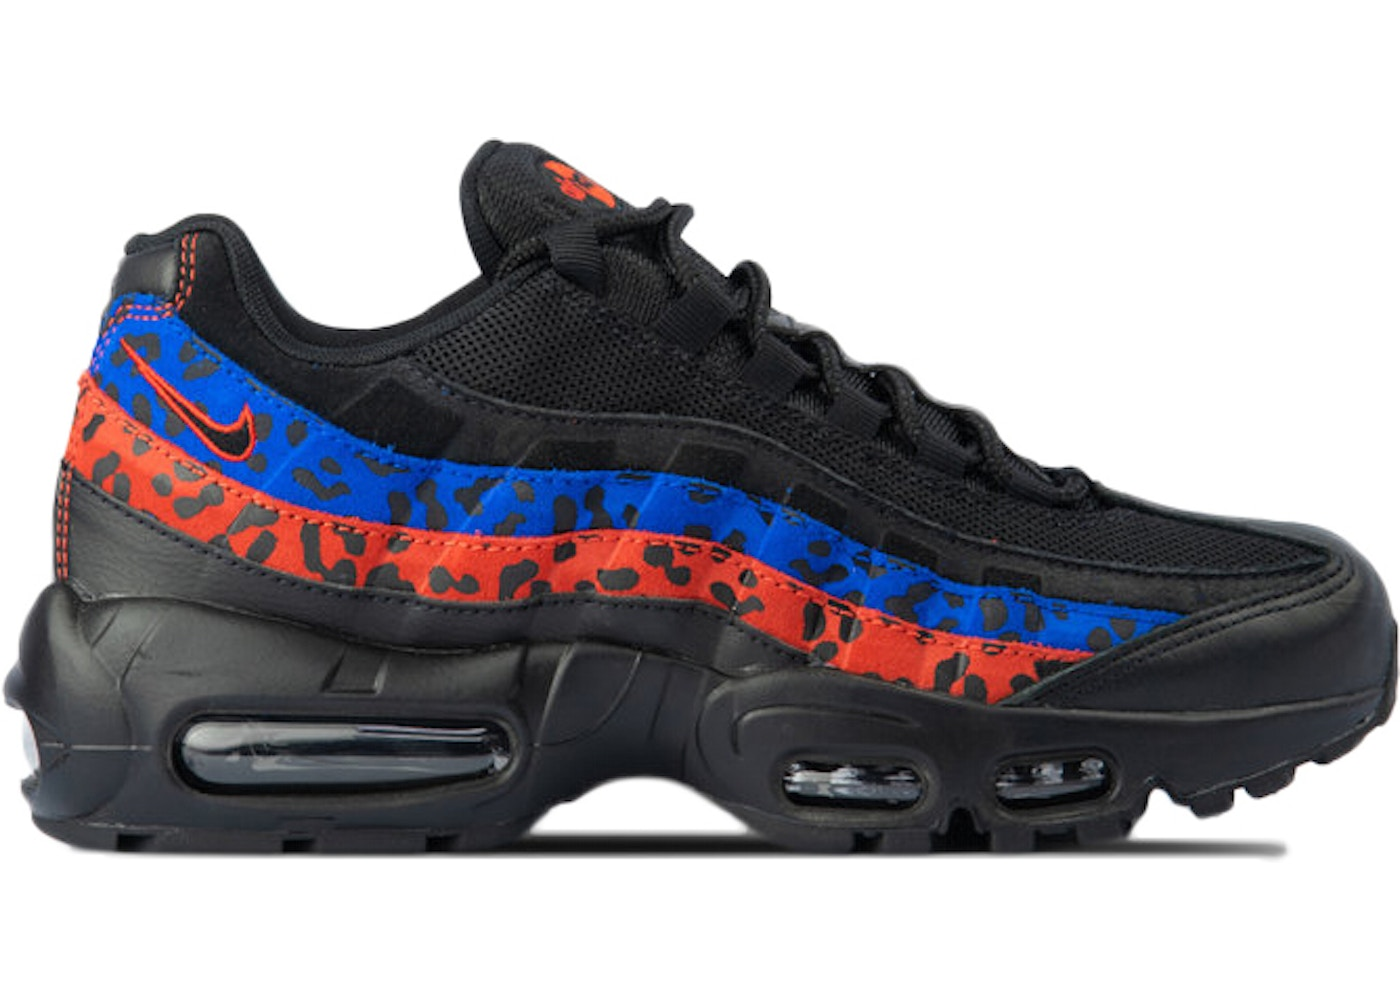 a6622f99ddd5 Nike Air Max 95 Shoes - Release Date